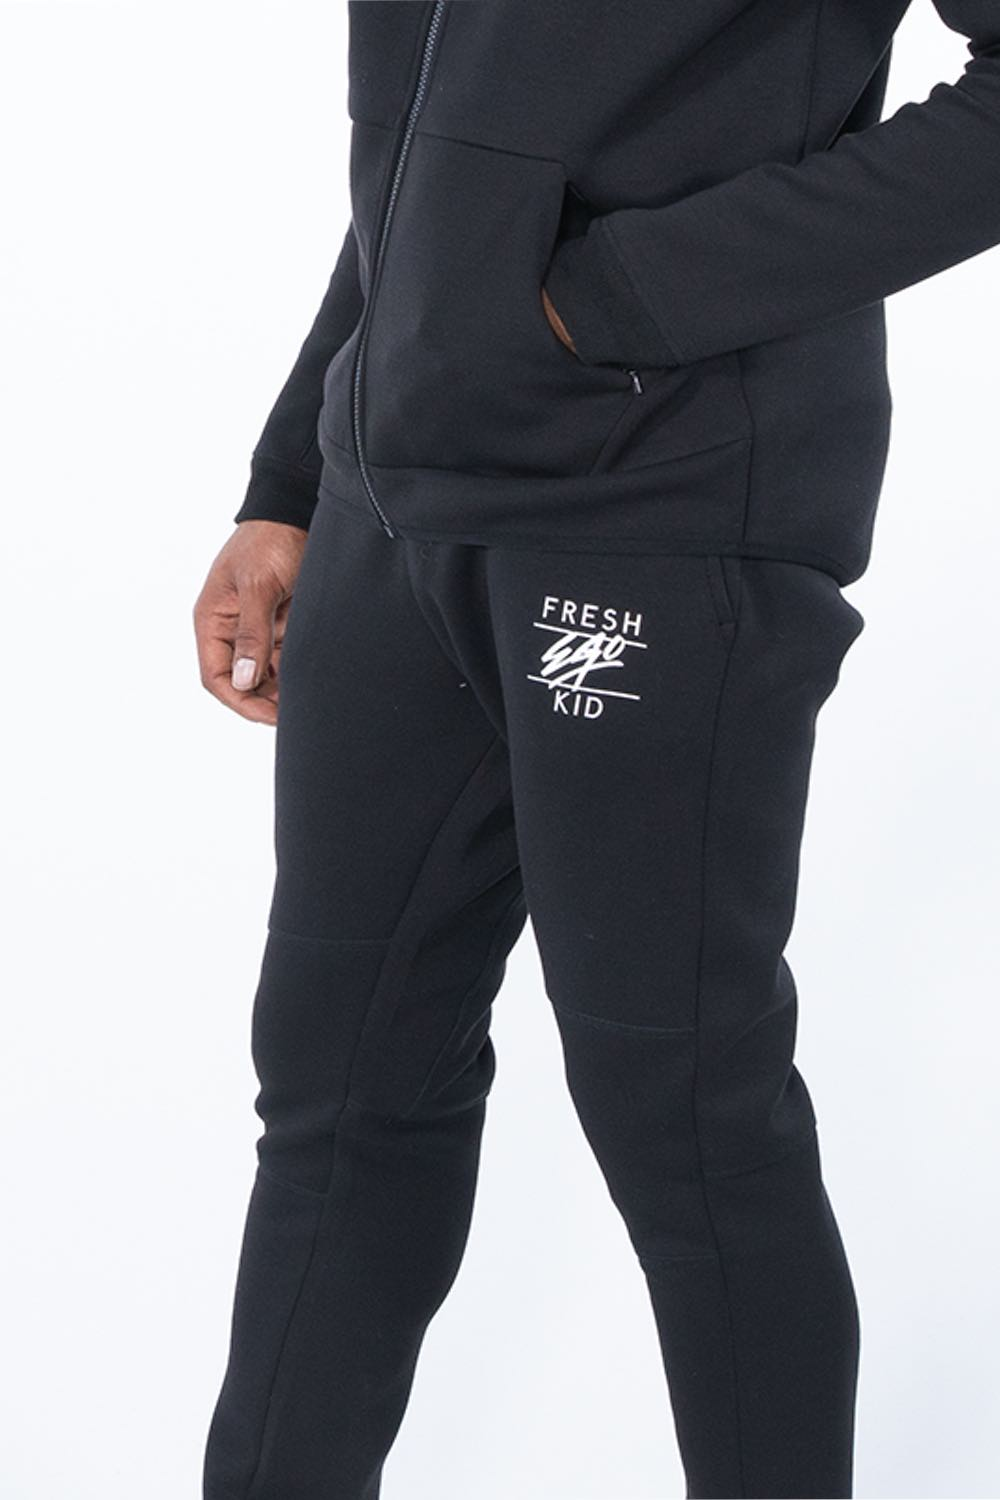 Fresh Ego Kid Scuba Tracksuit - Black - 2